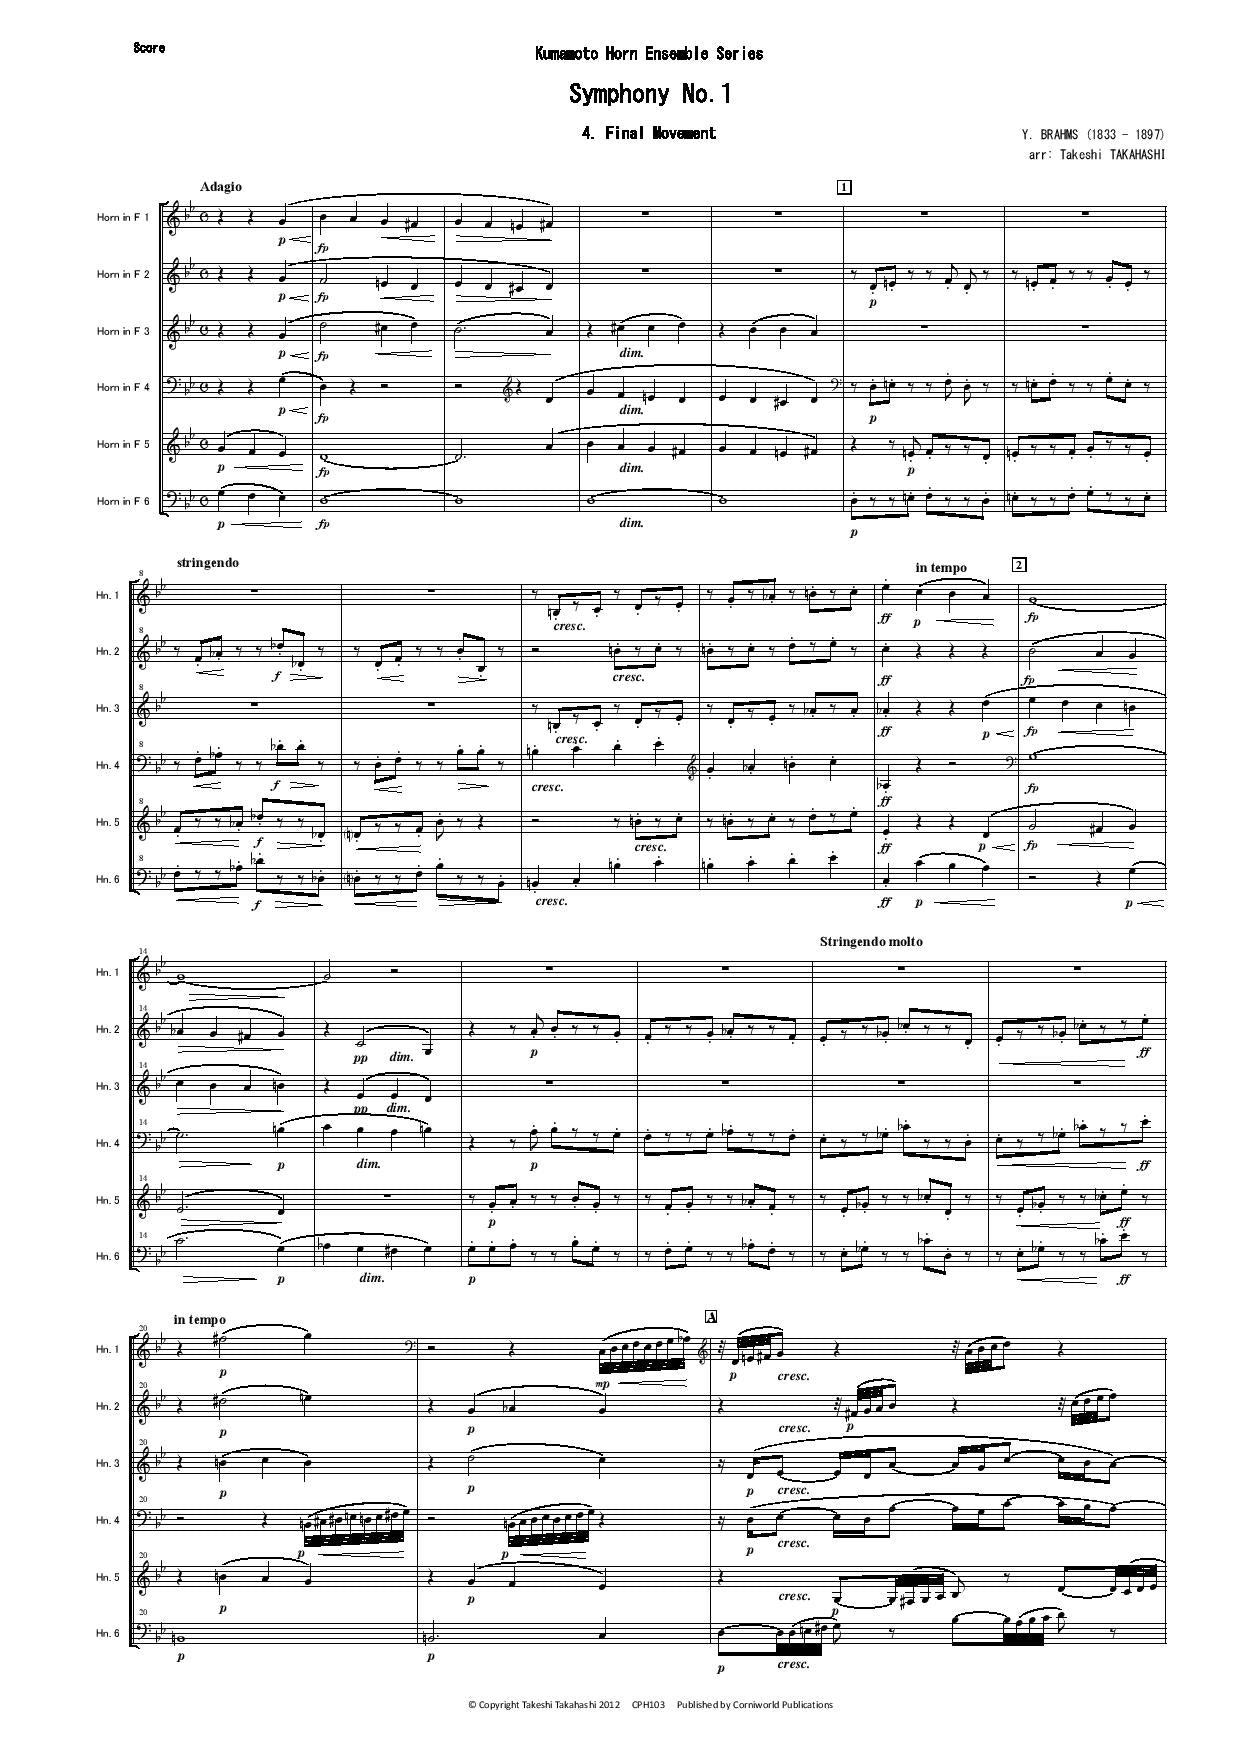 Final Mvt from Symphony No.1 (Brahms) CPH103